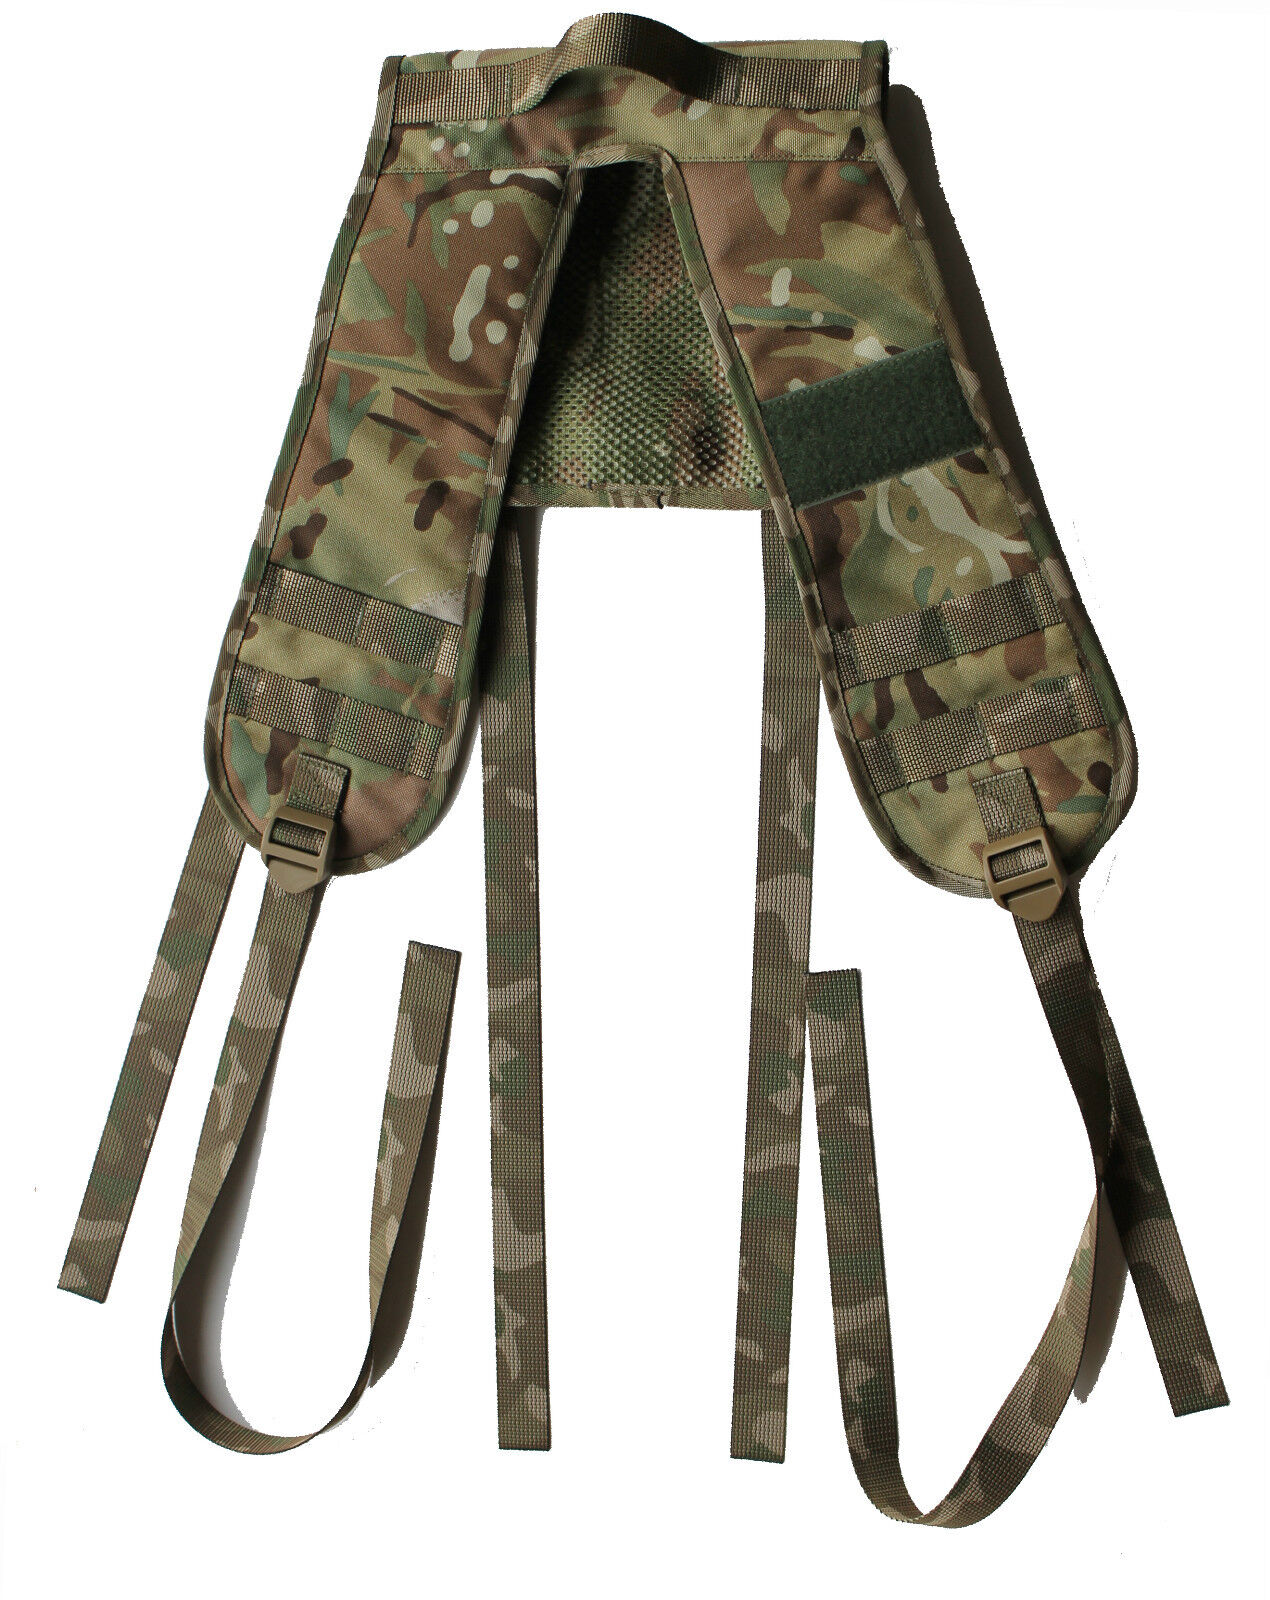 UKOM 6 Point Airborne PLCE Webbing Yoke - Colours include Crye Multicam   MTP